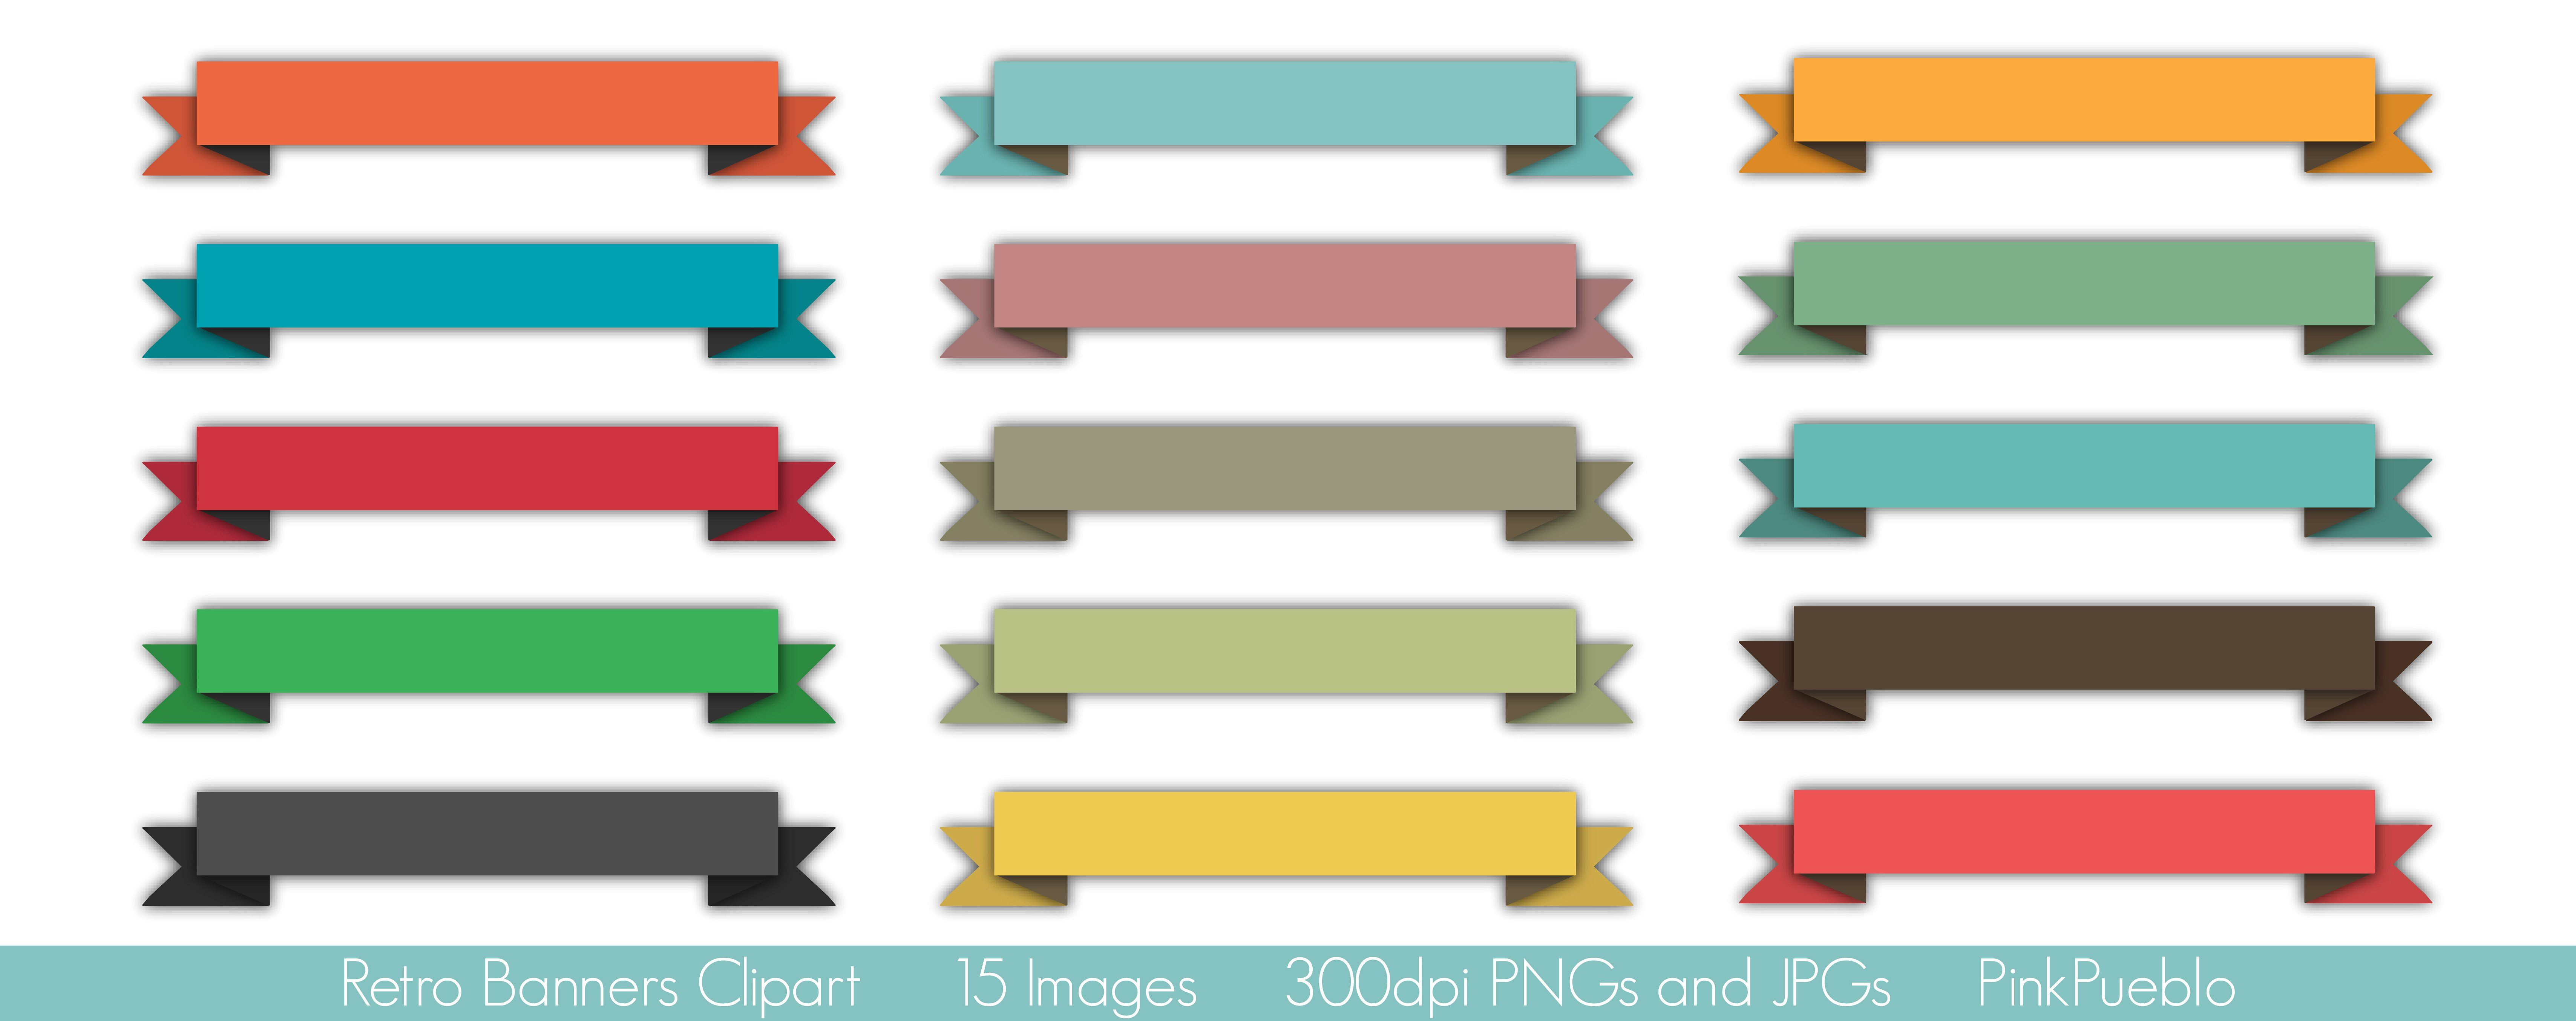 Retro Banners Vectors and Clipart by PinkPueblo on.